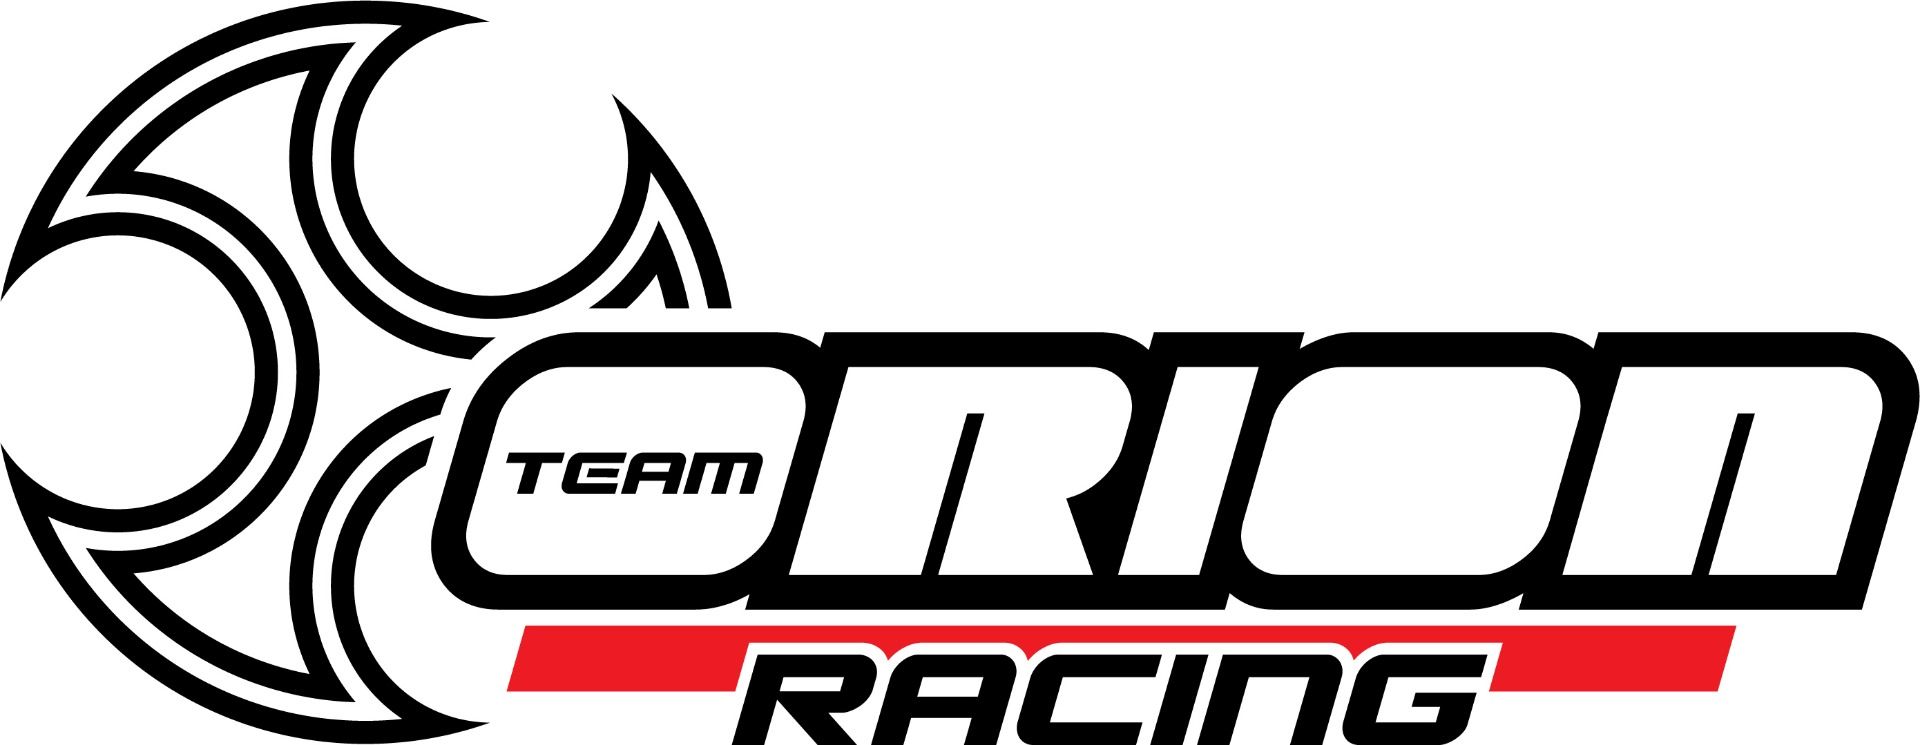 Team Orion Racing